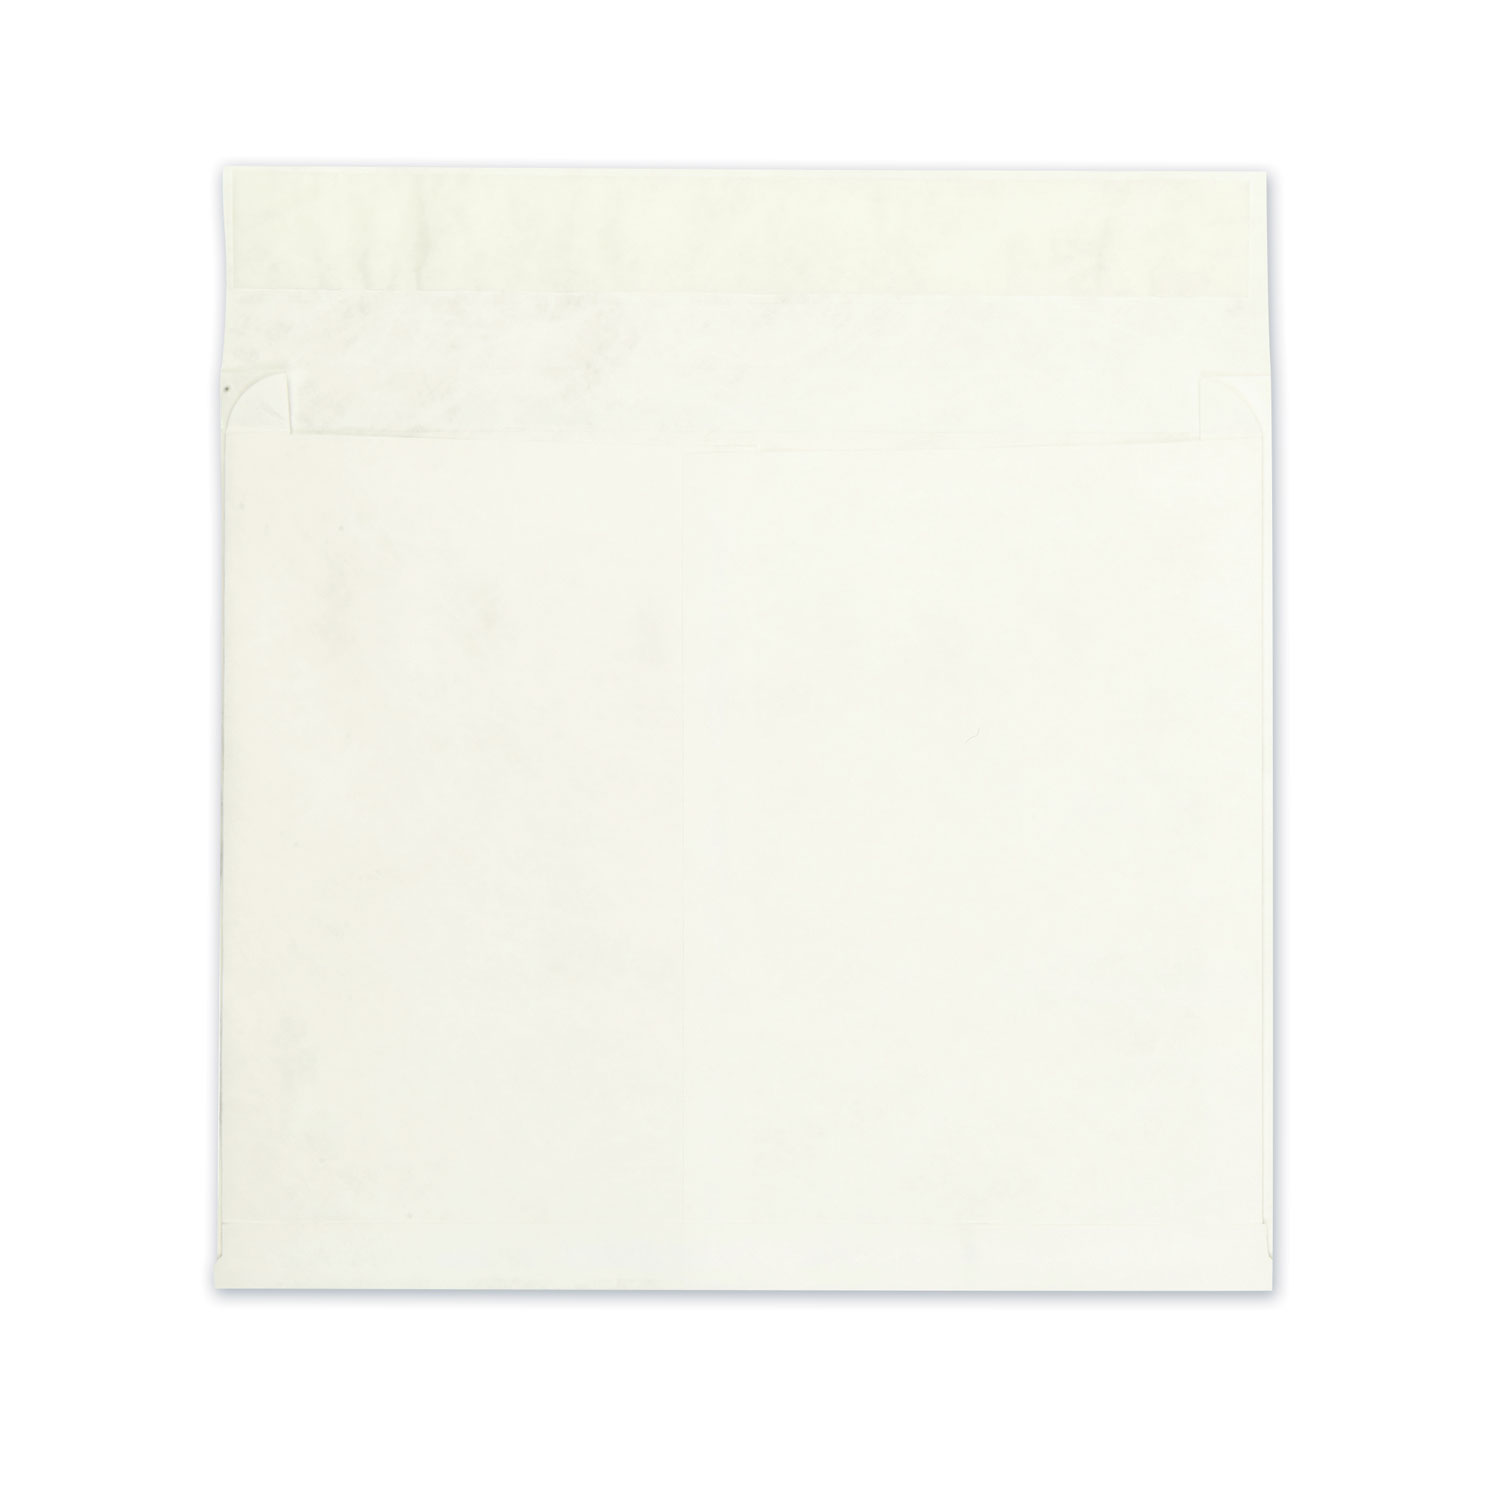 Open Side Expansion Mailers, DuPont Tyvek, #15 1/2, Cheese Blade Flap, Redi-Strip Closure, 12 x 16, White, 100/Carton